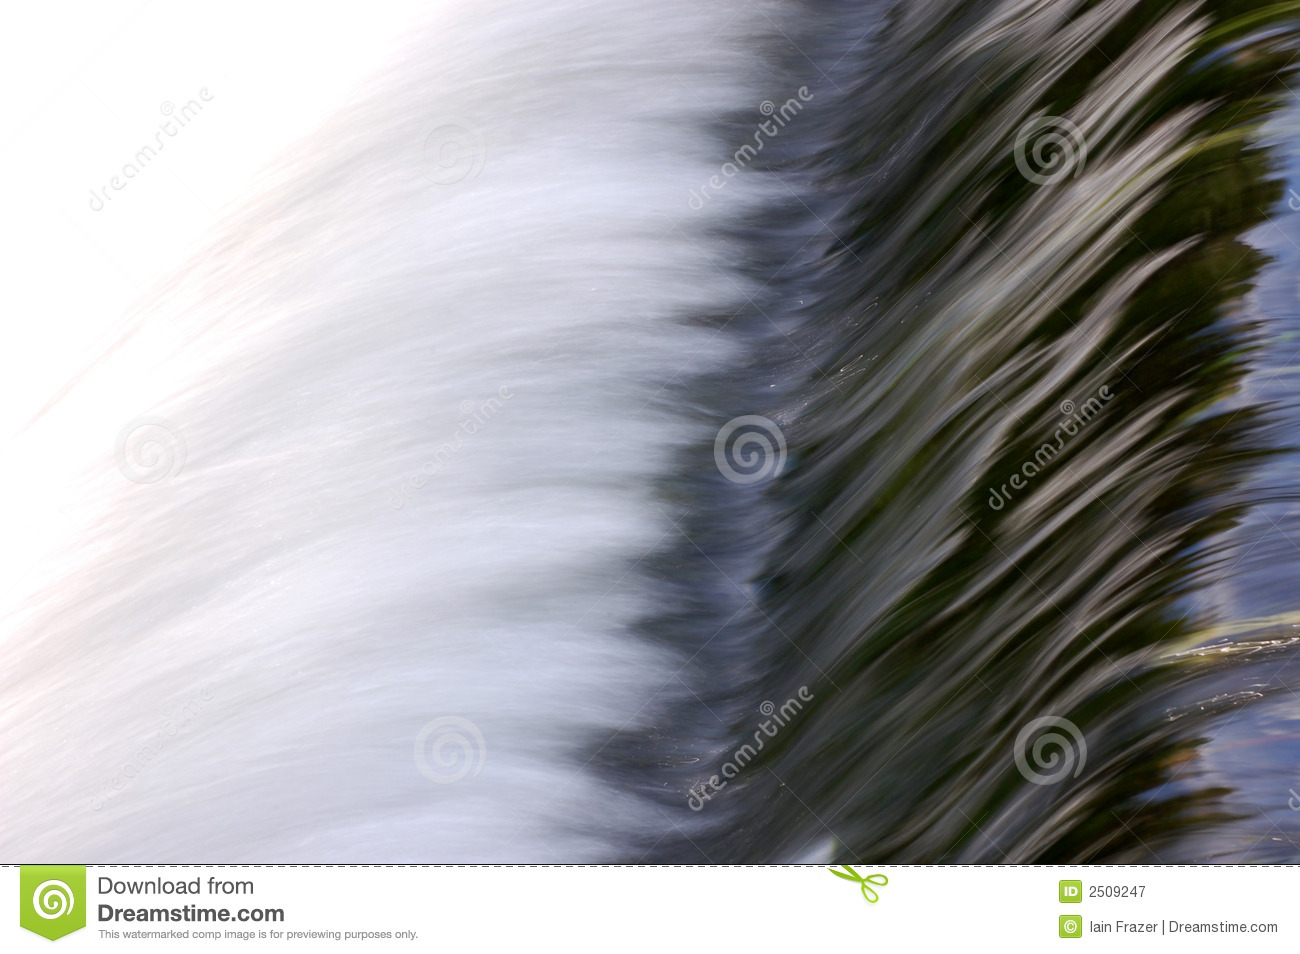 Over rushing water weir